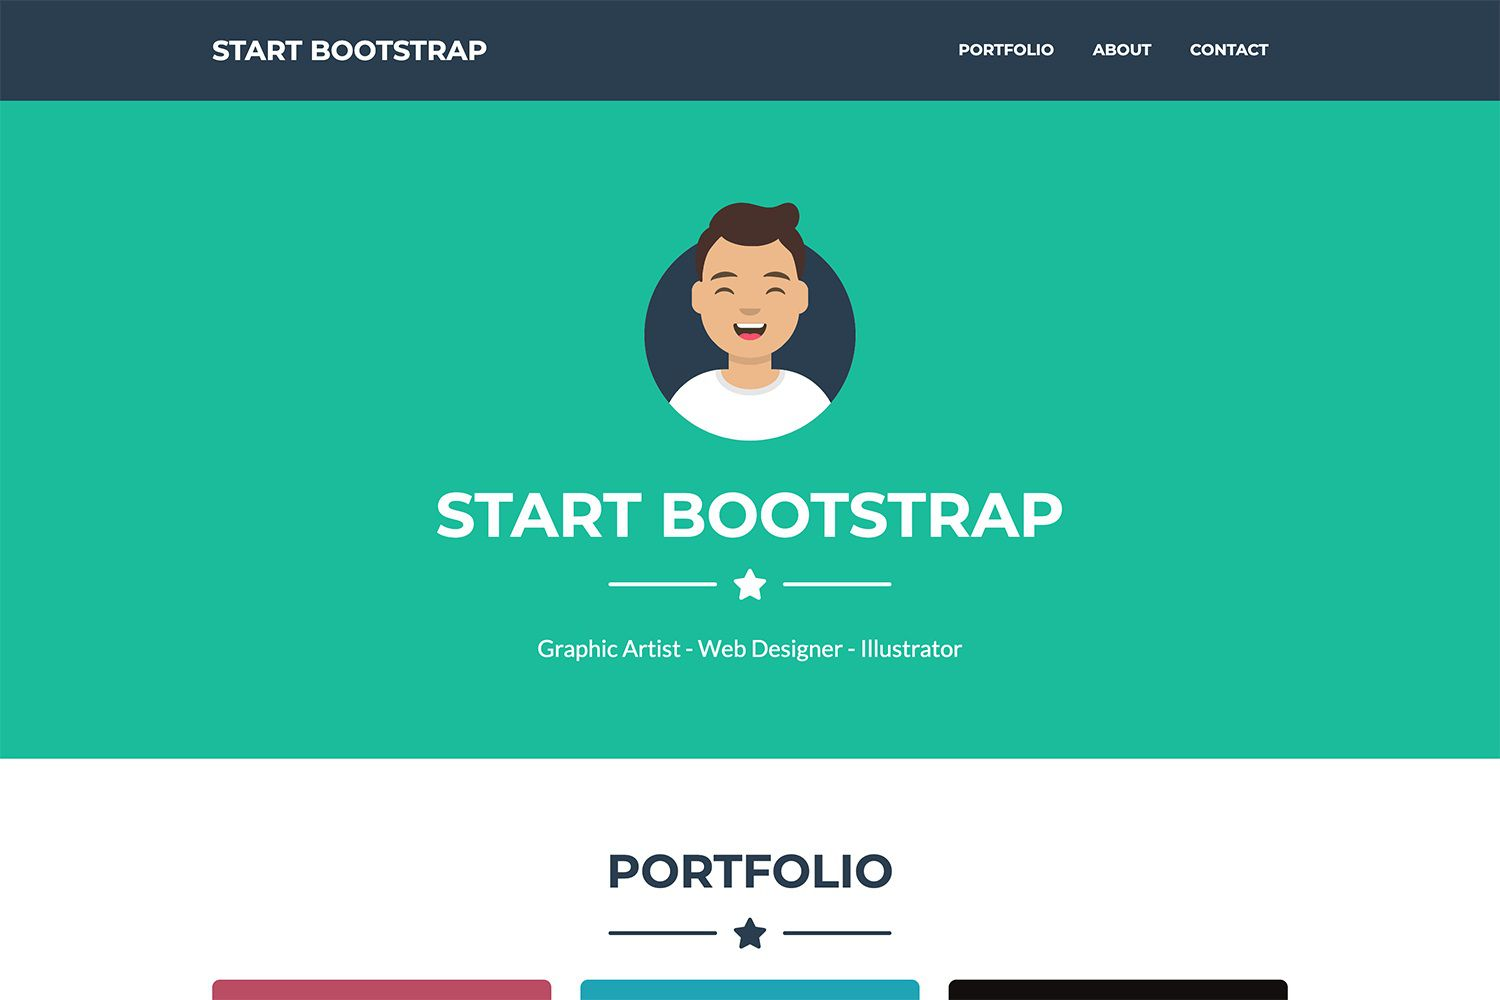 004 Phenomenal Bootstrap Portfolio Template Free High Definition  Download Website 4Full